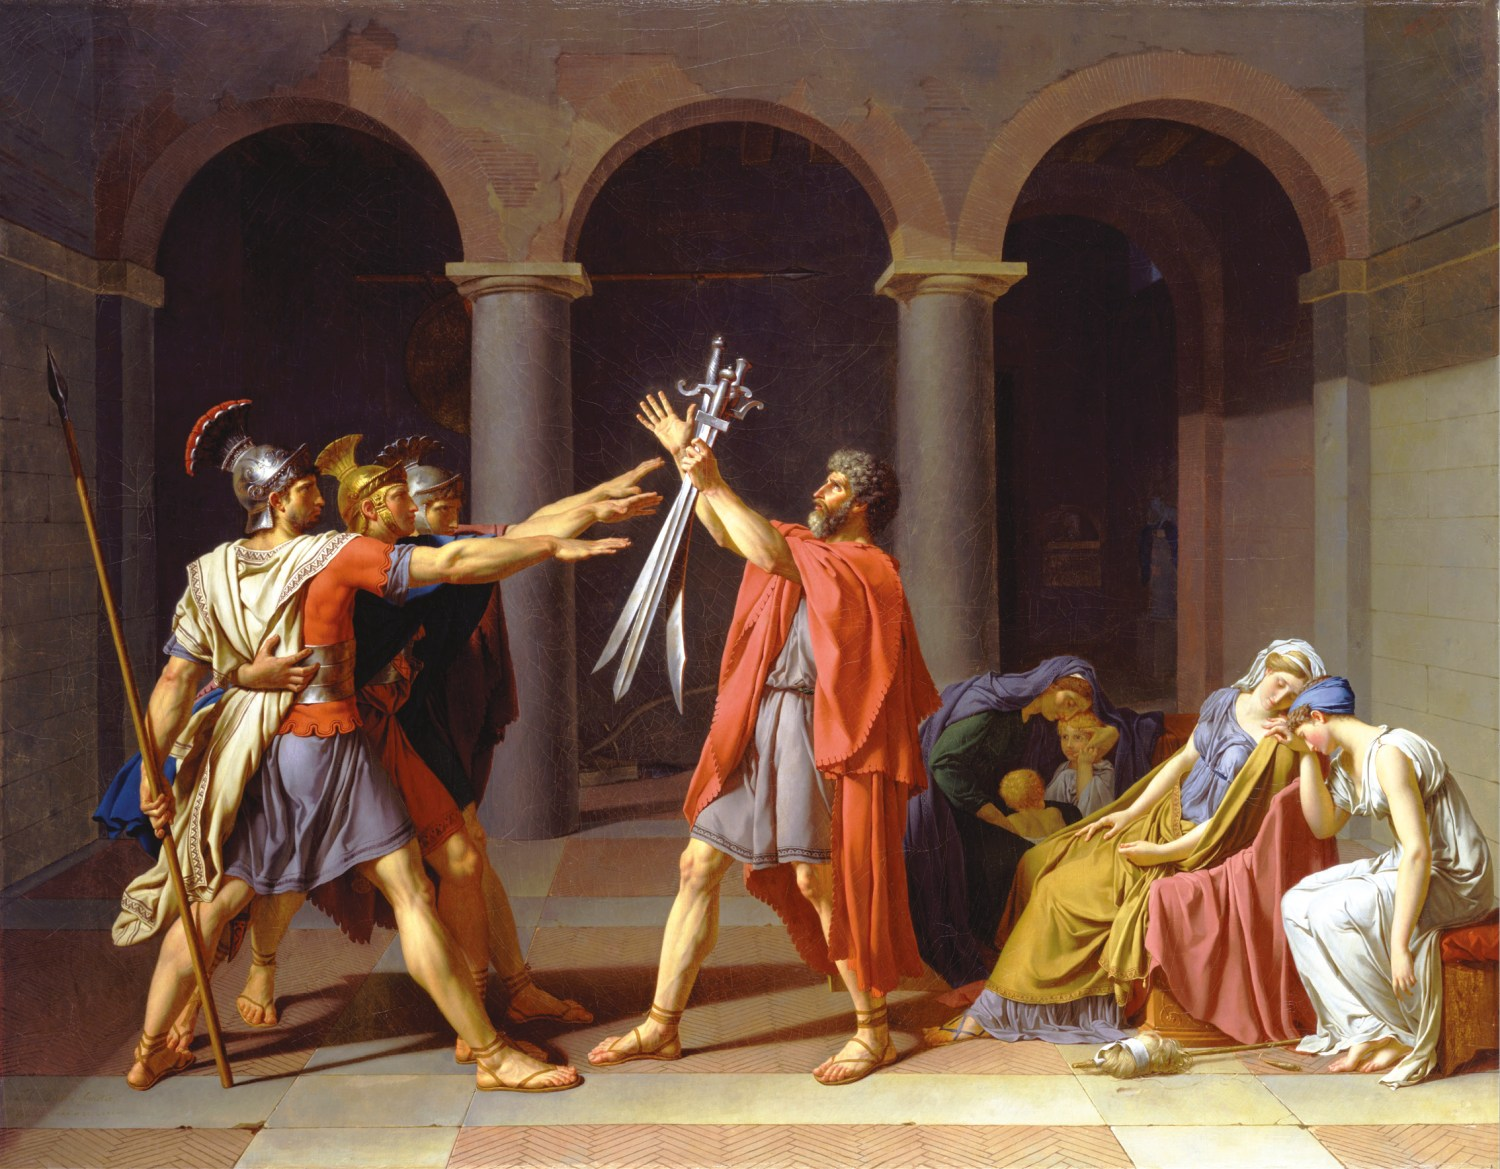 ABOVE Oath of the Horatii (1784) by French radical artist Jacques-Louis David was inspired by the ideals of the Enlightenment in the years before the French Revolution.